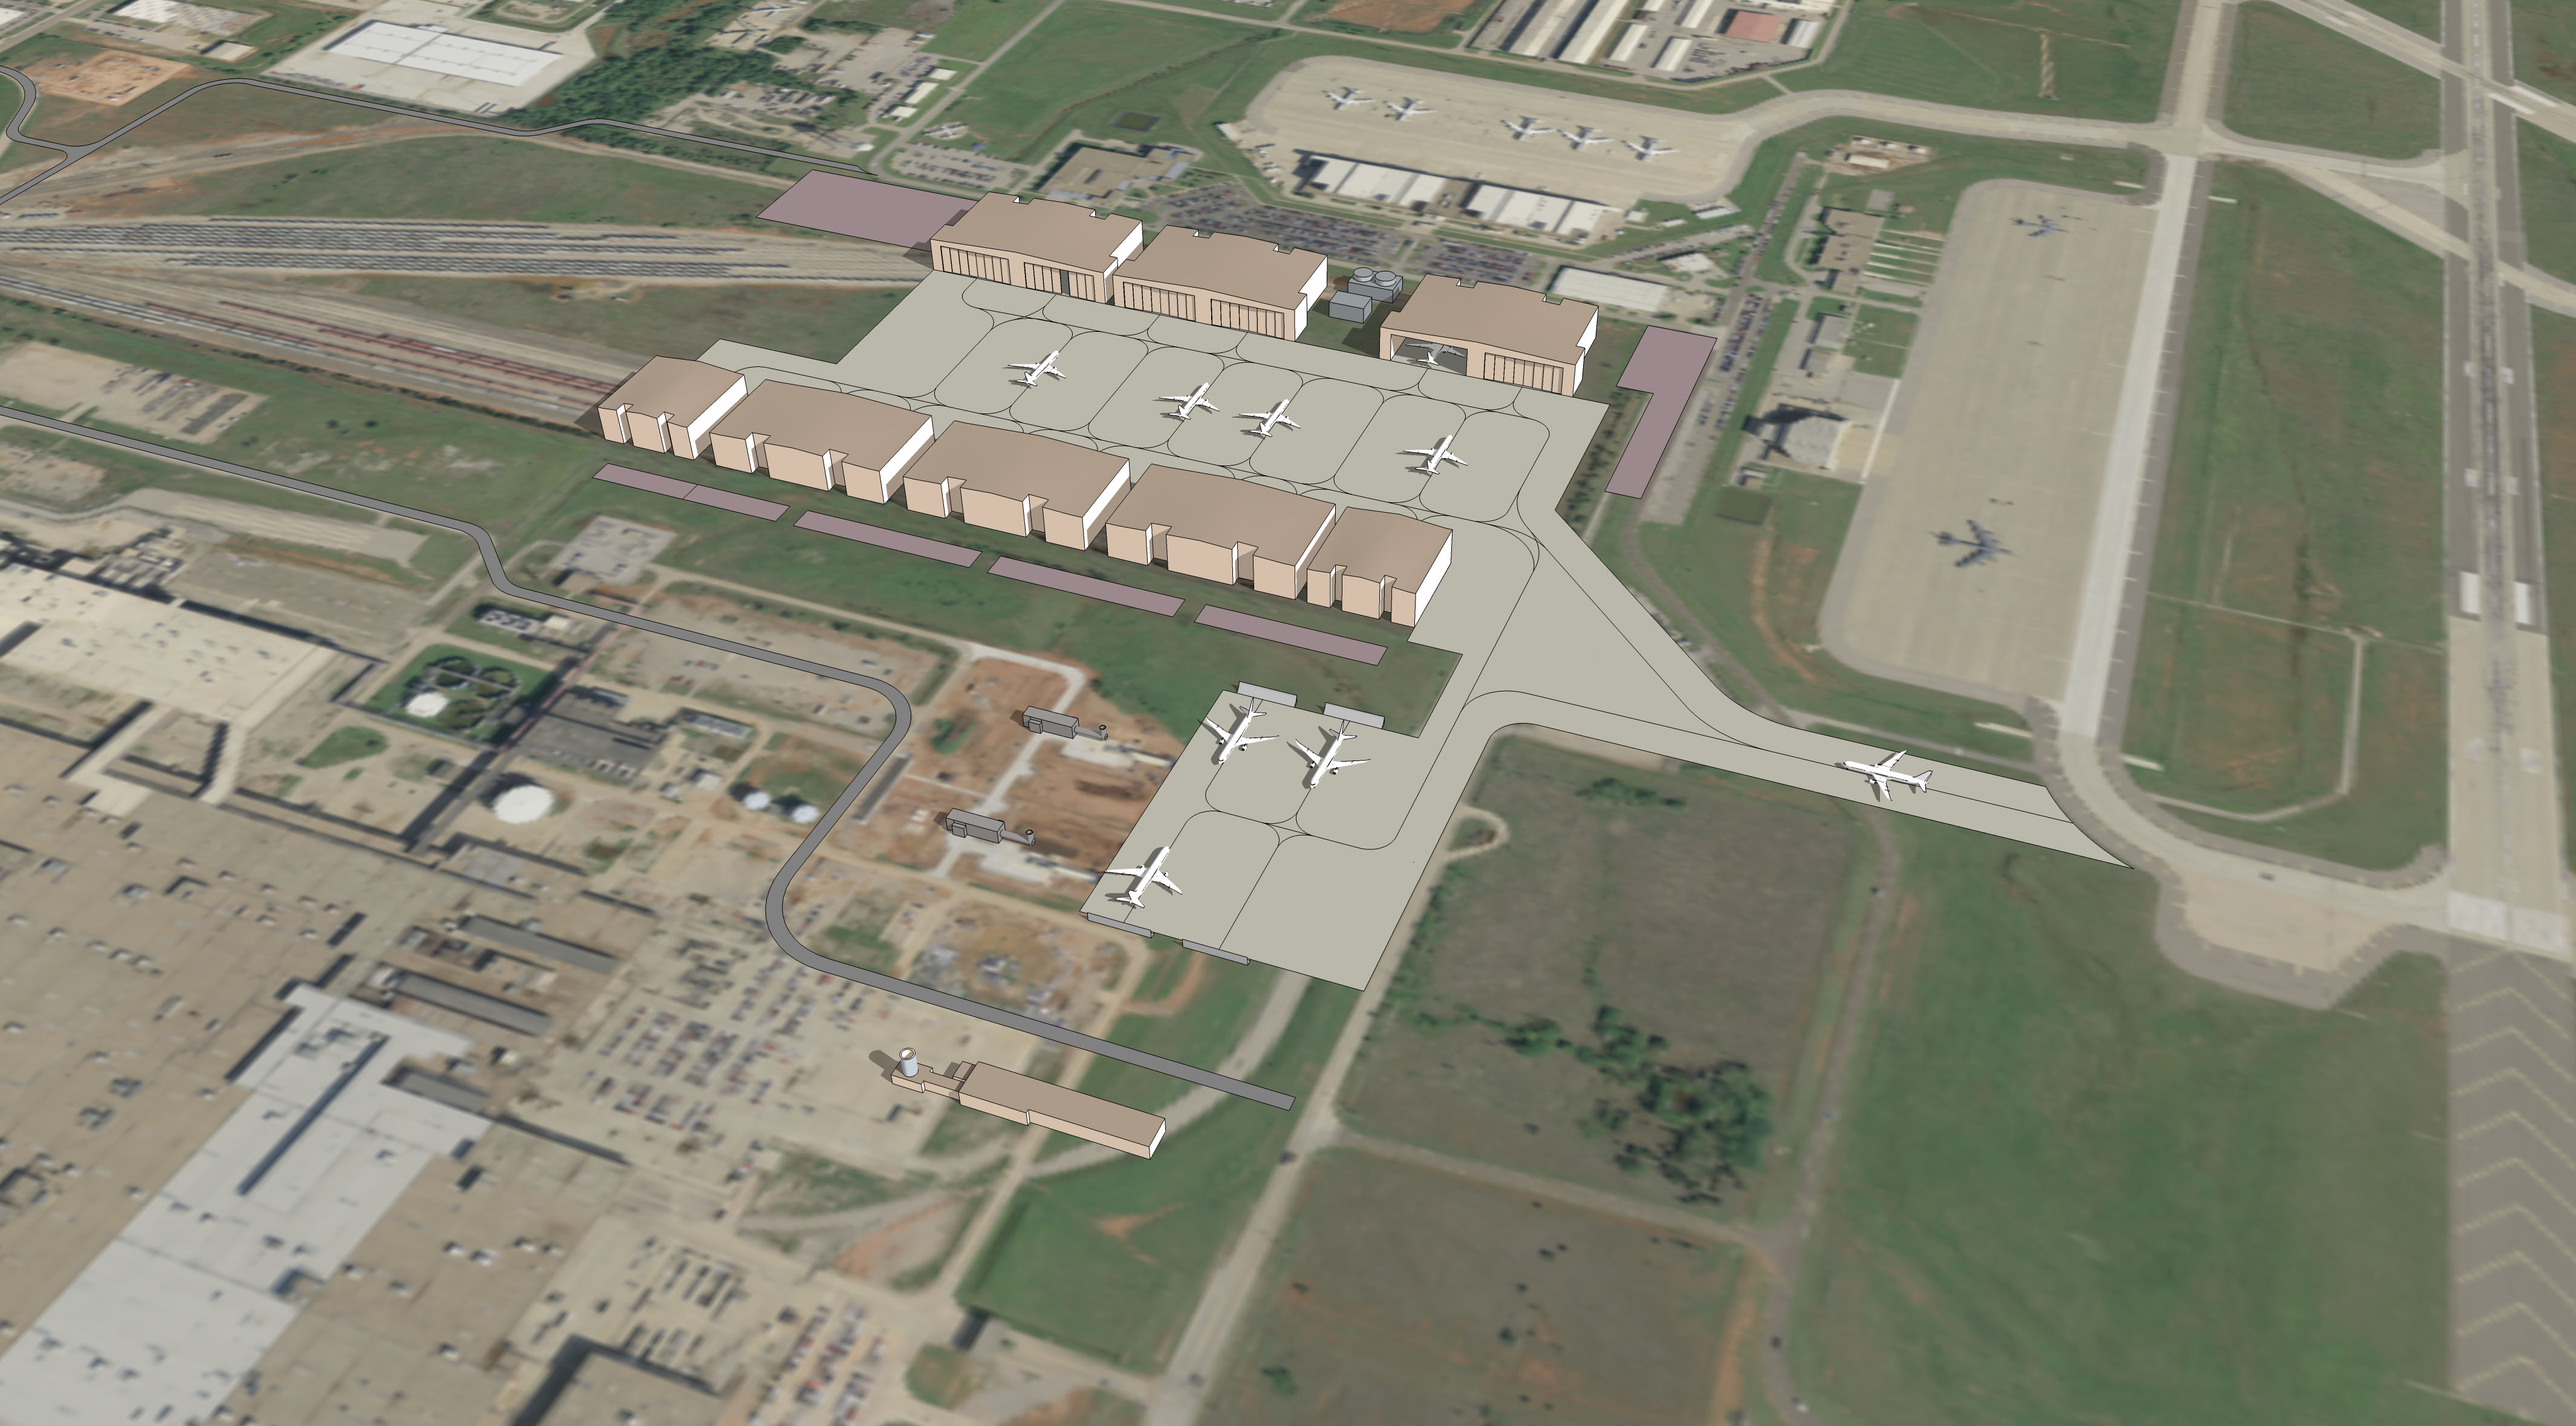 Tinker afb space a